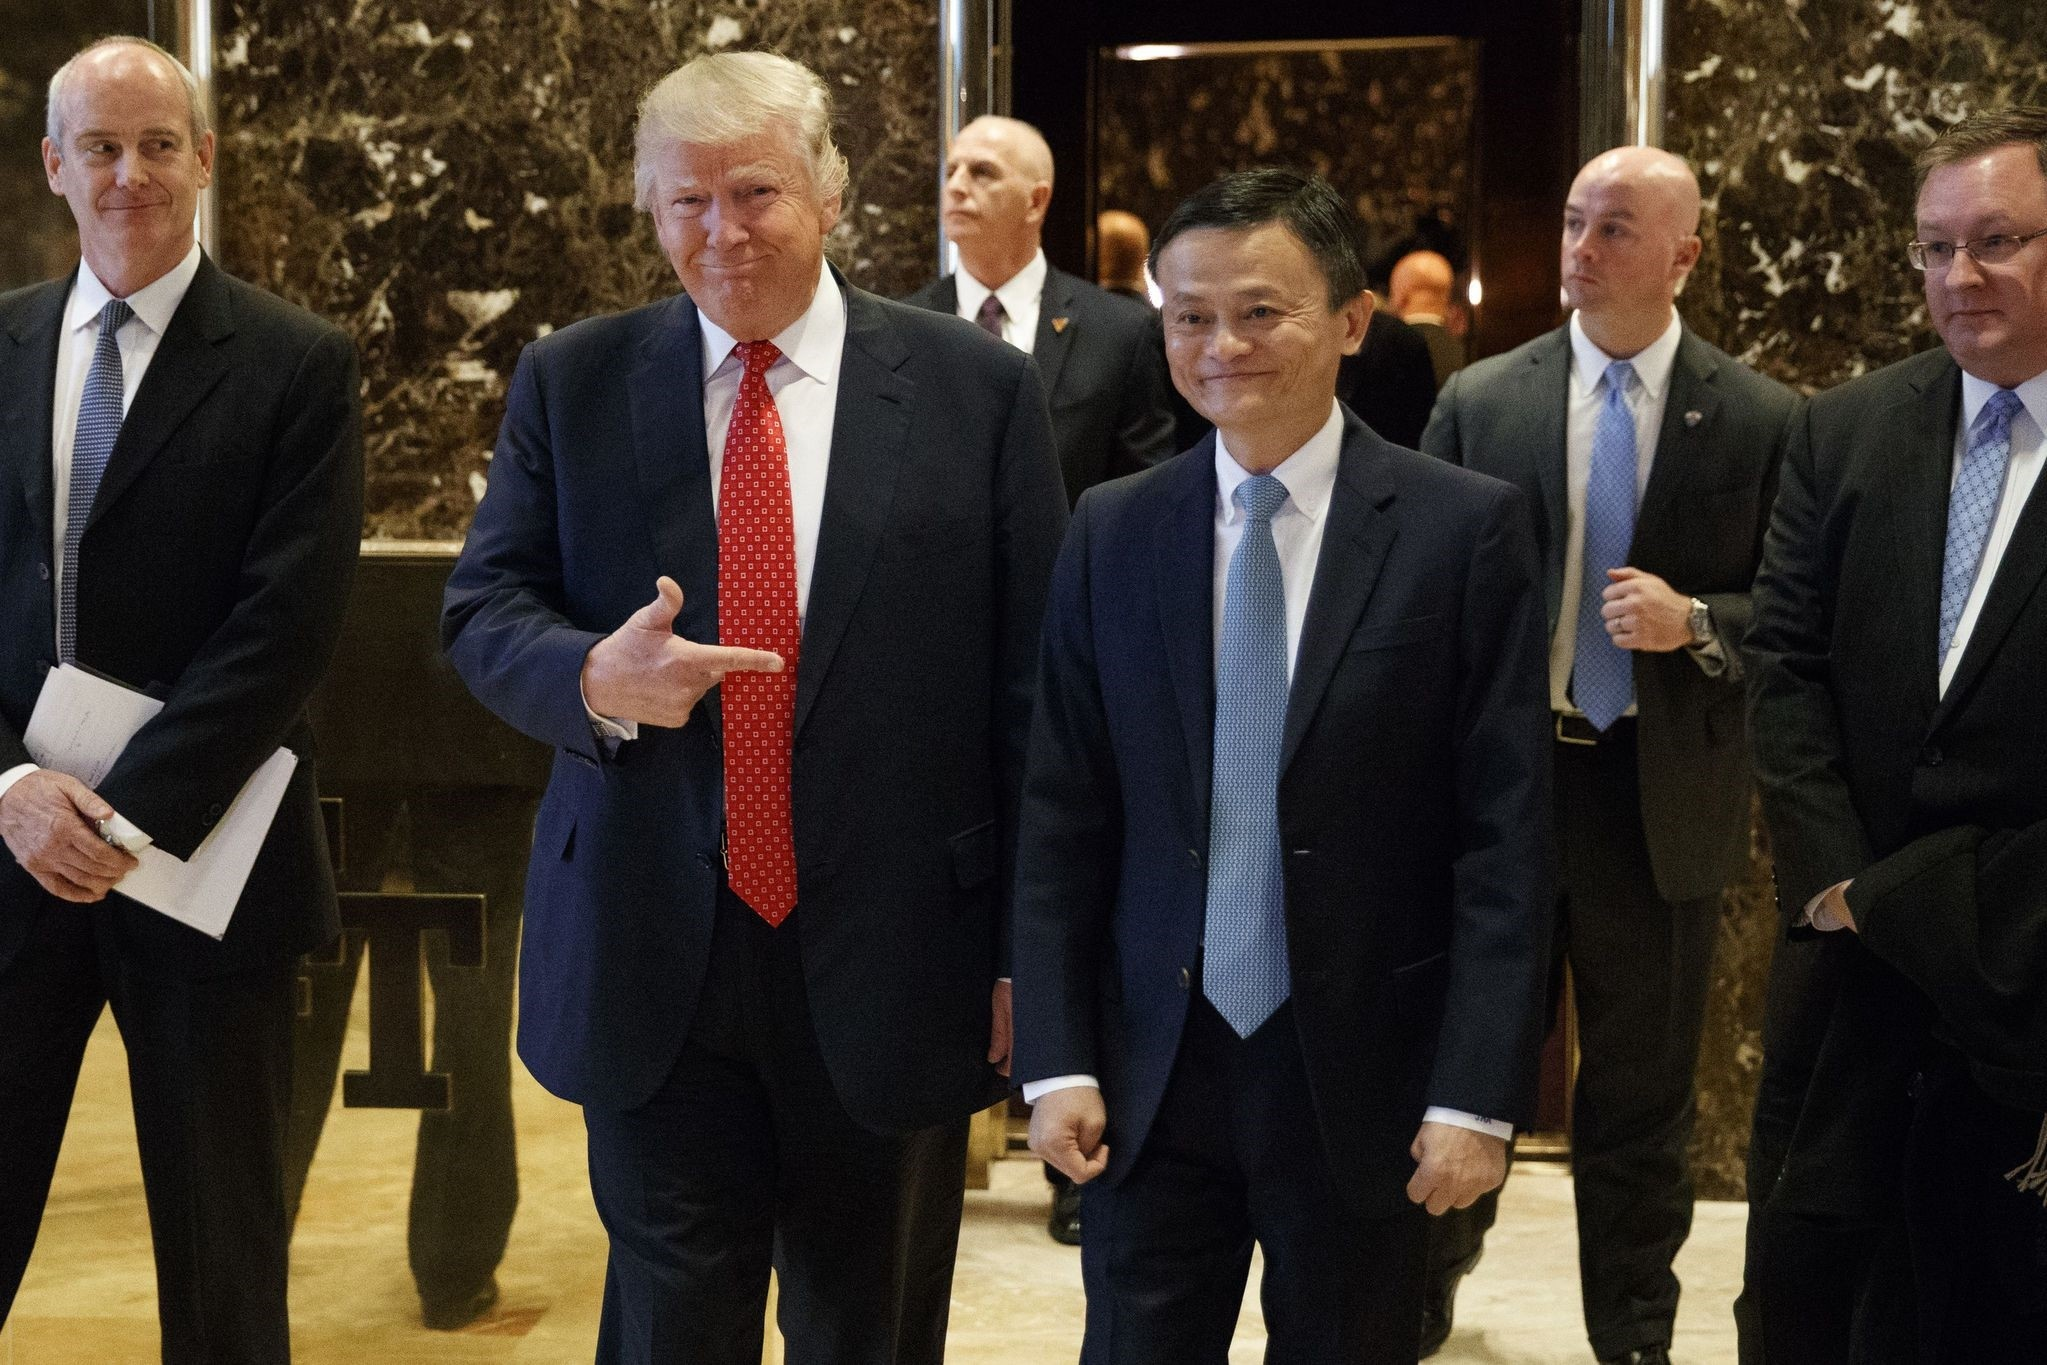 Jack Ma (R), founder and executive chairman of Alibaba Group, and President-elect Donald Trump speak to the media after their meeting at Trump Tower in New York.